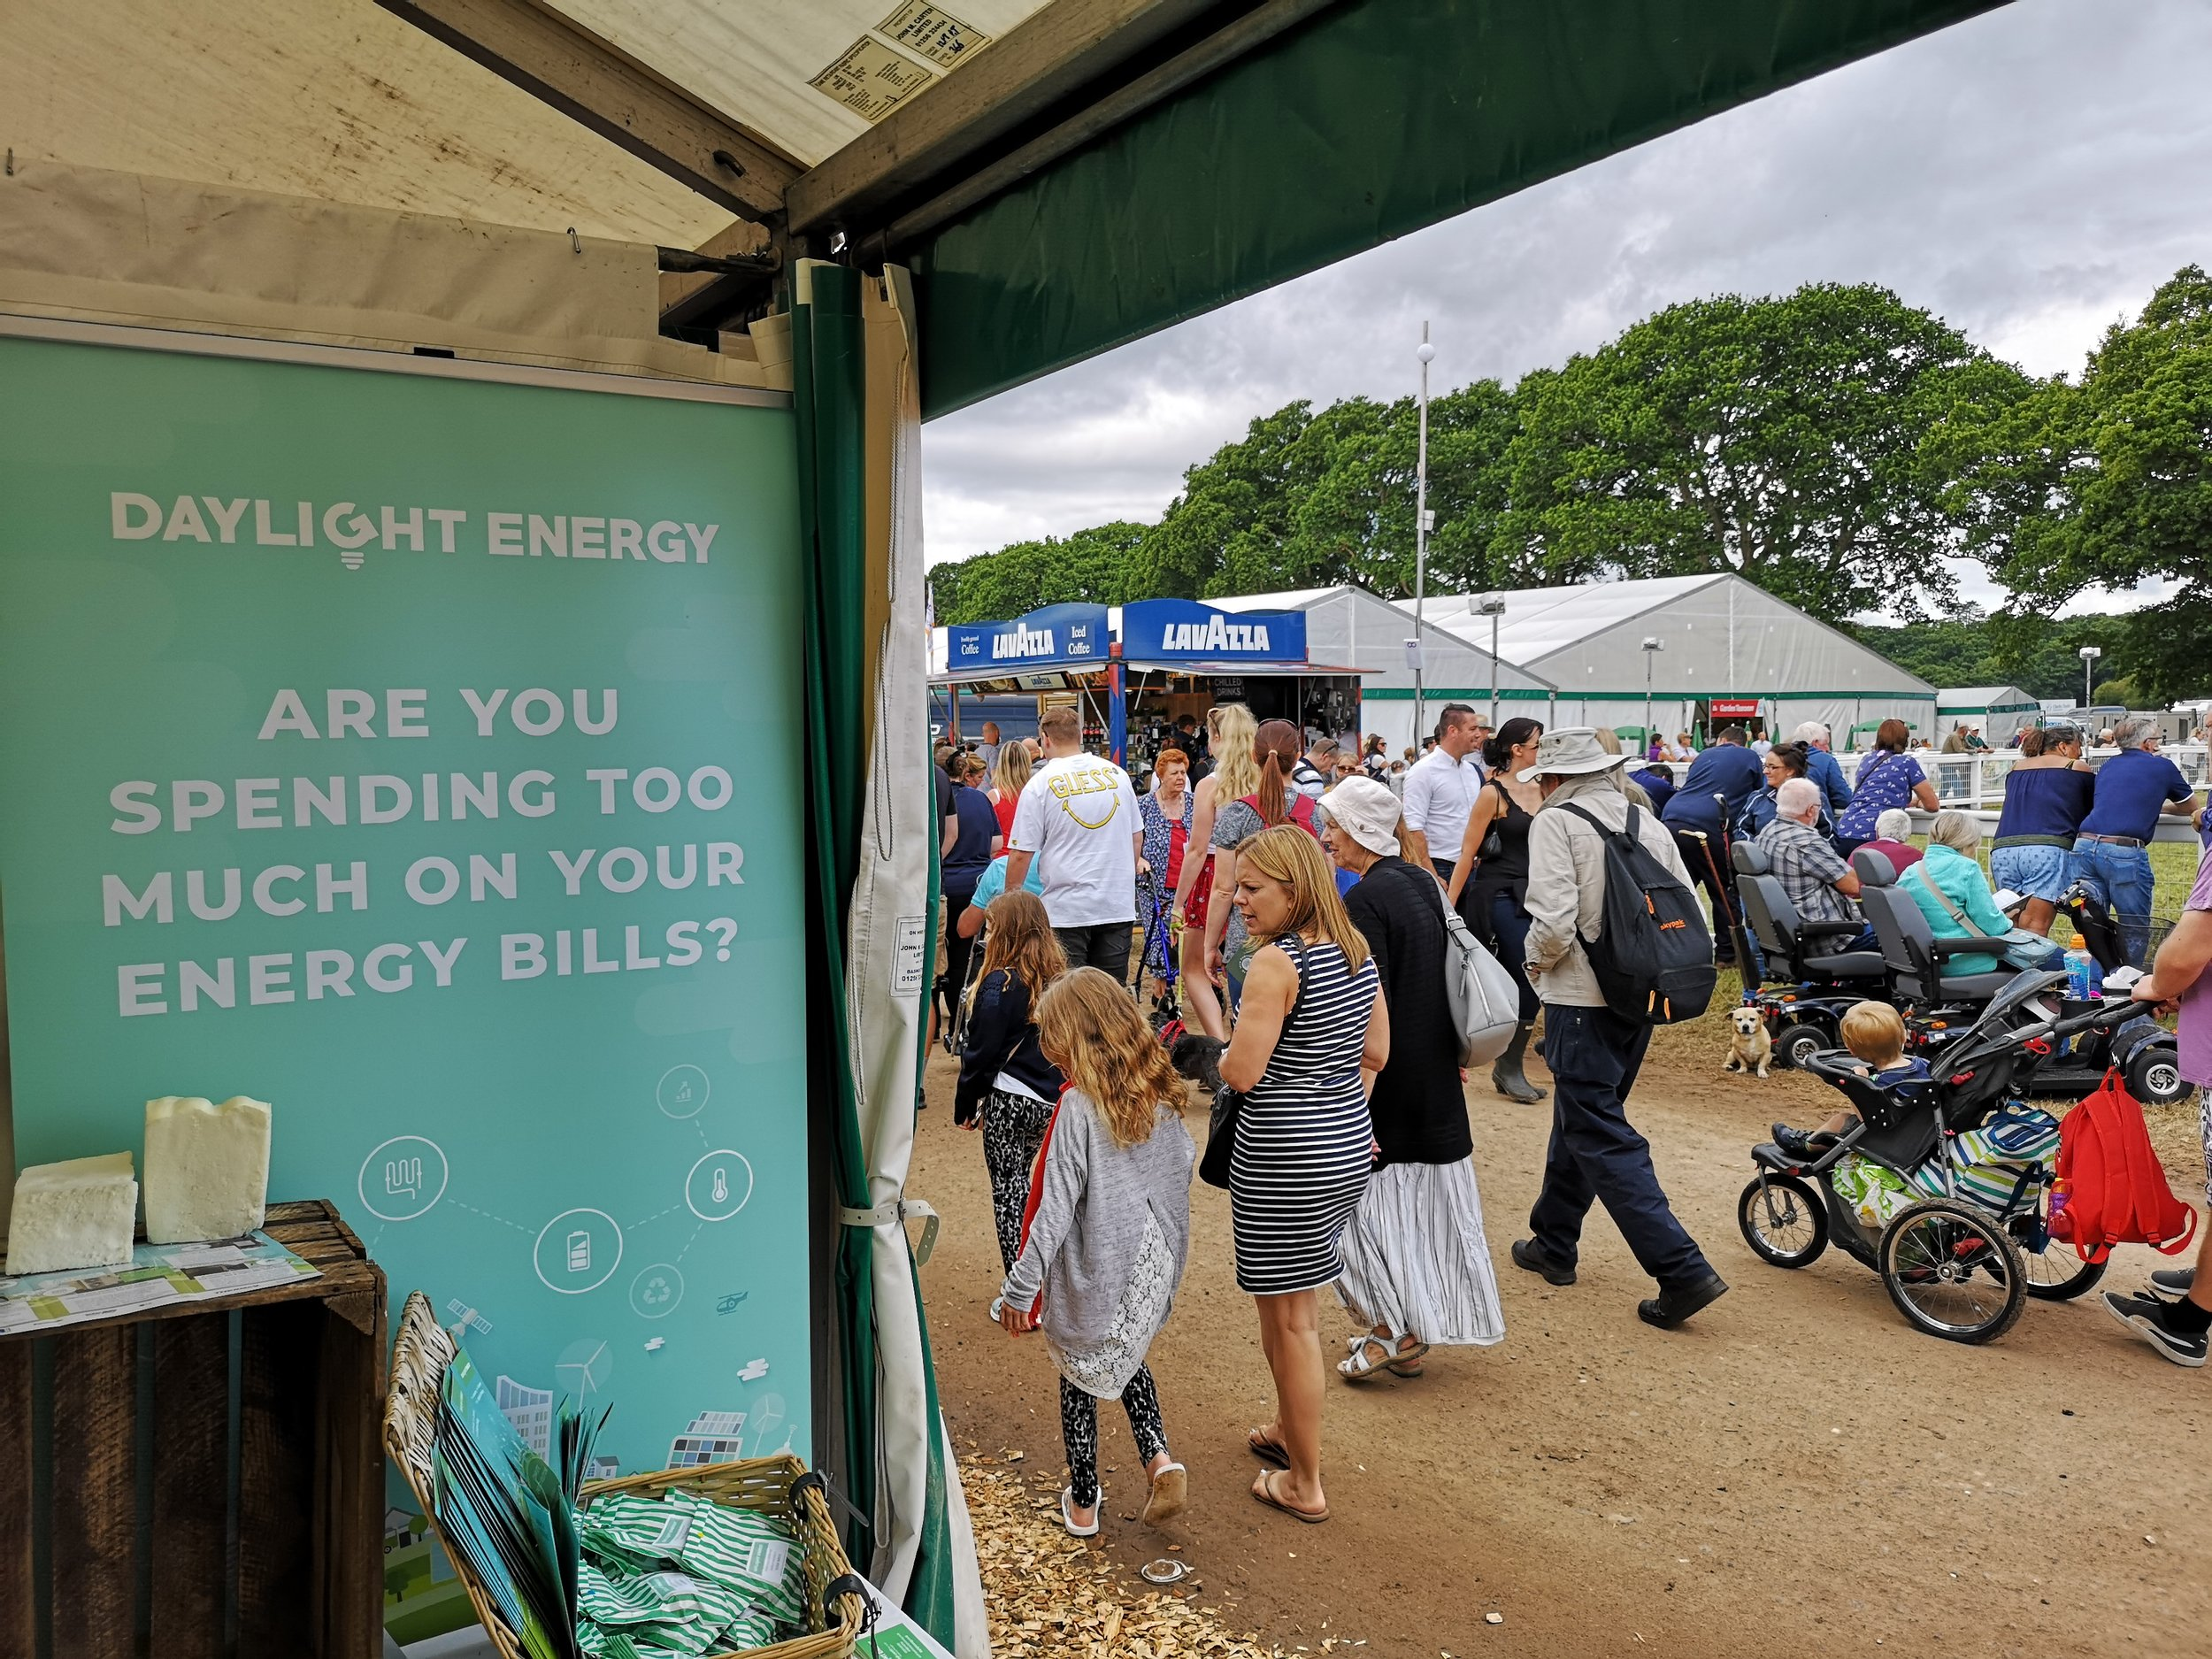 The Daylight Energy team were happily positioned along Northern Avenue, opposite the North Ring of the New Forest Show